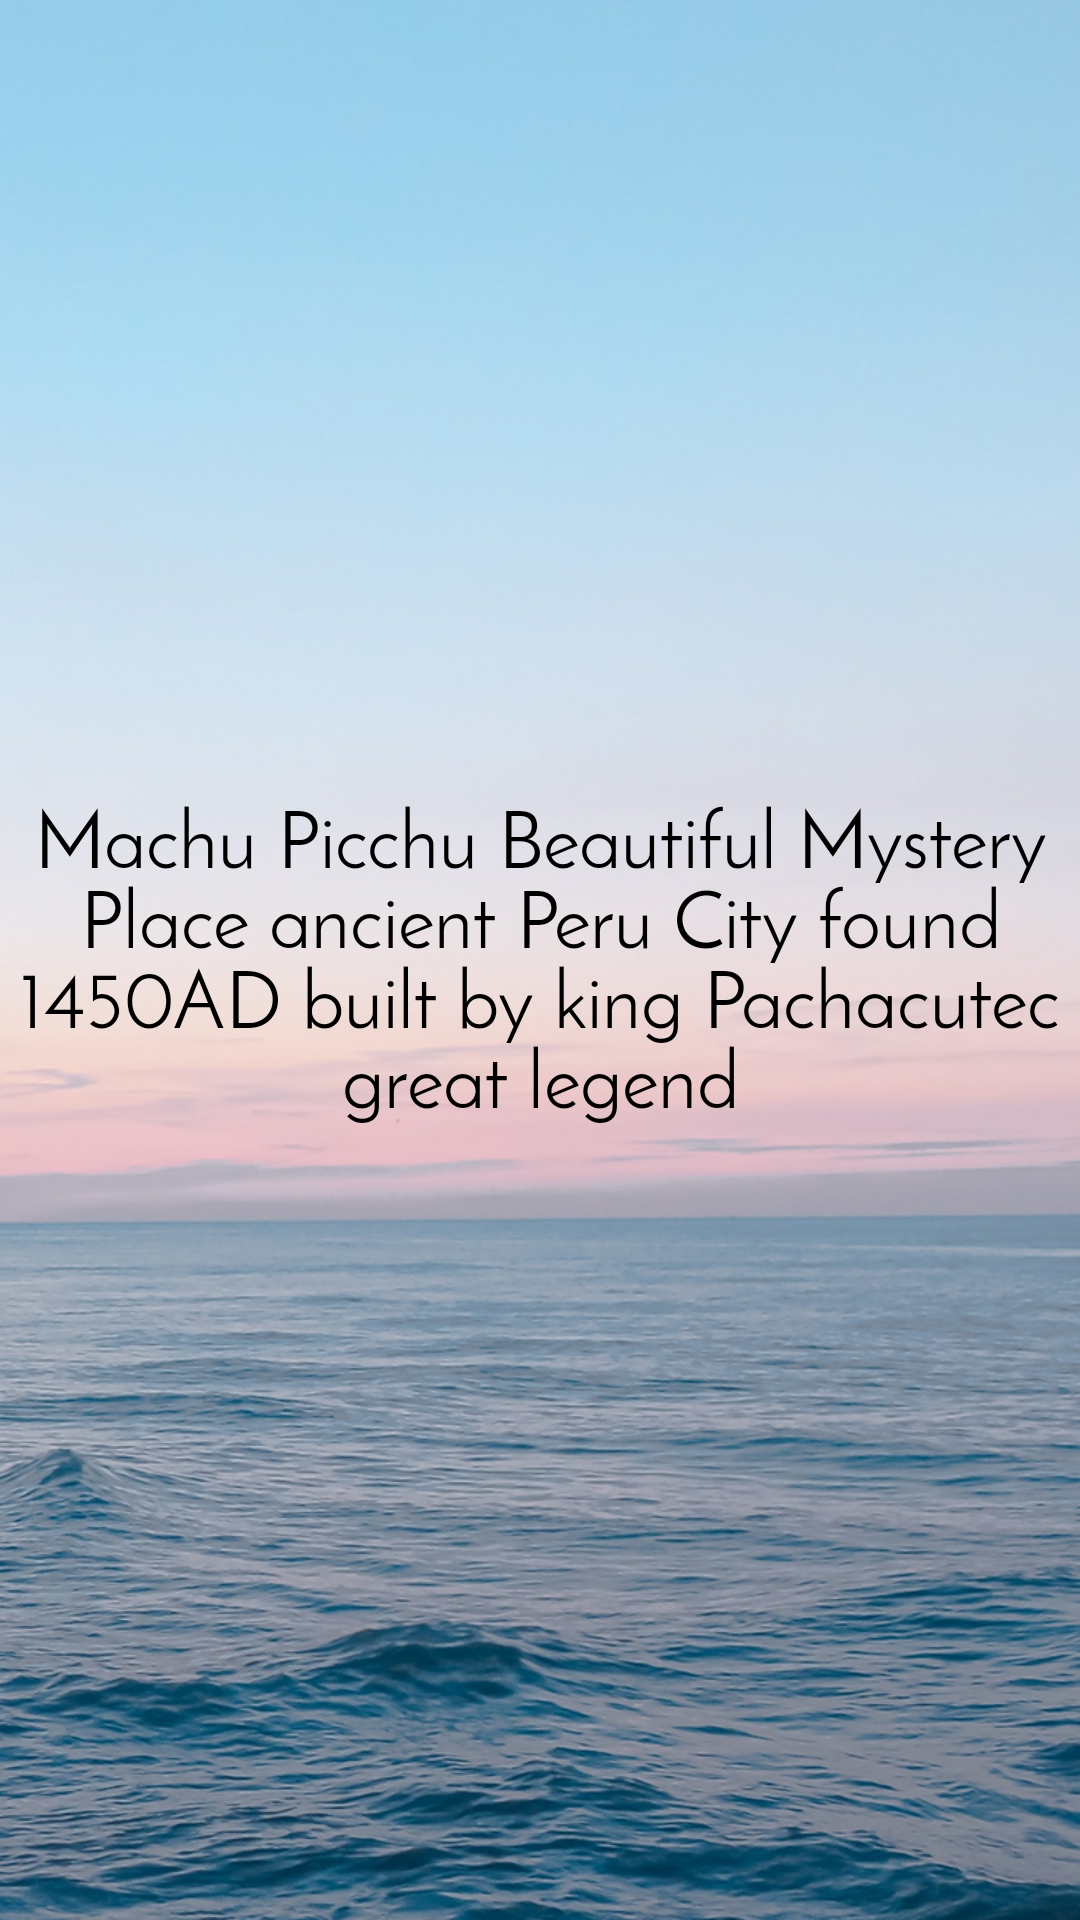 Machu Picchu Beautiful Mystery Place ancient Peru City found 1450AD built by king Pachacutec great legend